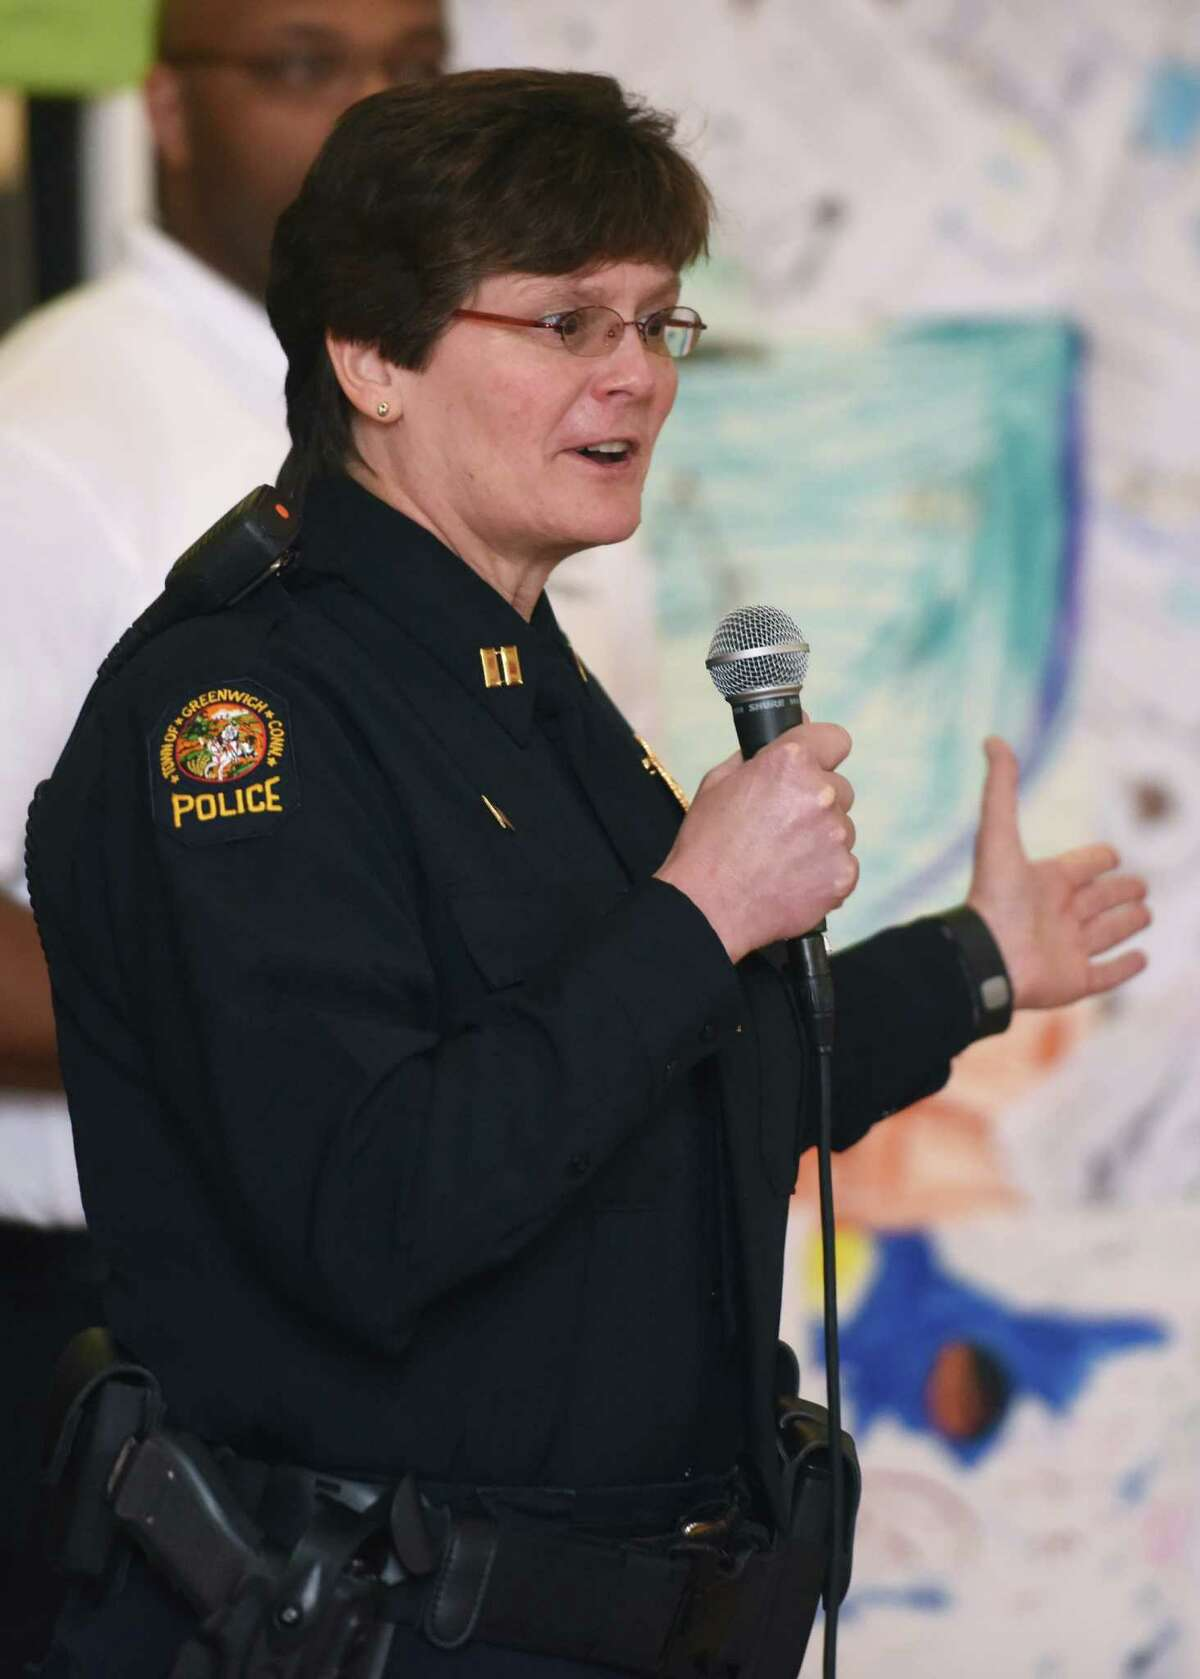 Greenwich Police Capt. Pamela Gustovich speaks on the last day of ZAC Camp at the Boys and Girls Club in Greenwich, Conn. Thursday, April 16, 2015.